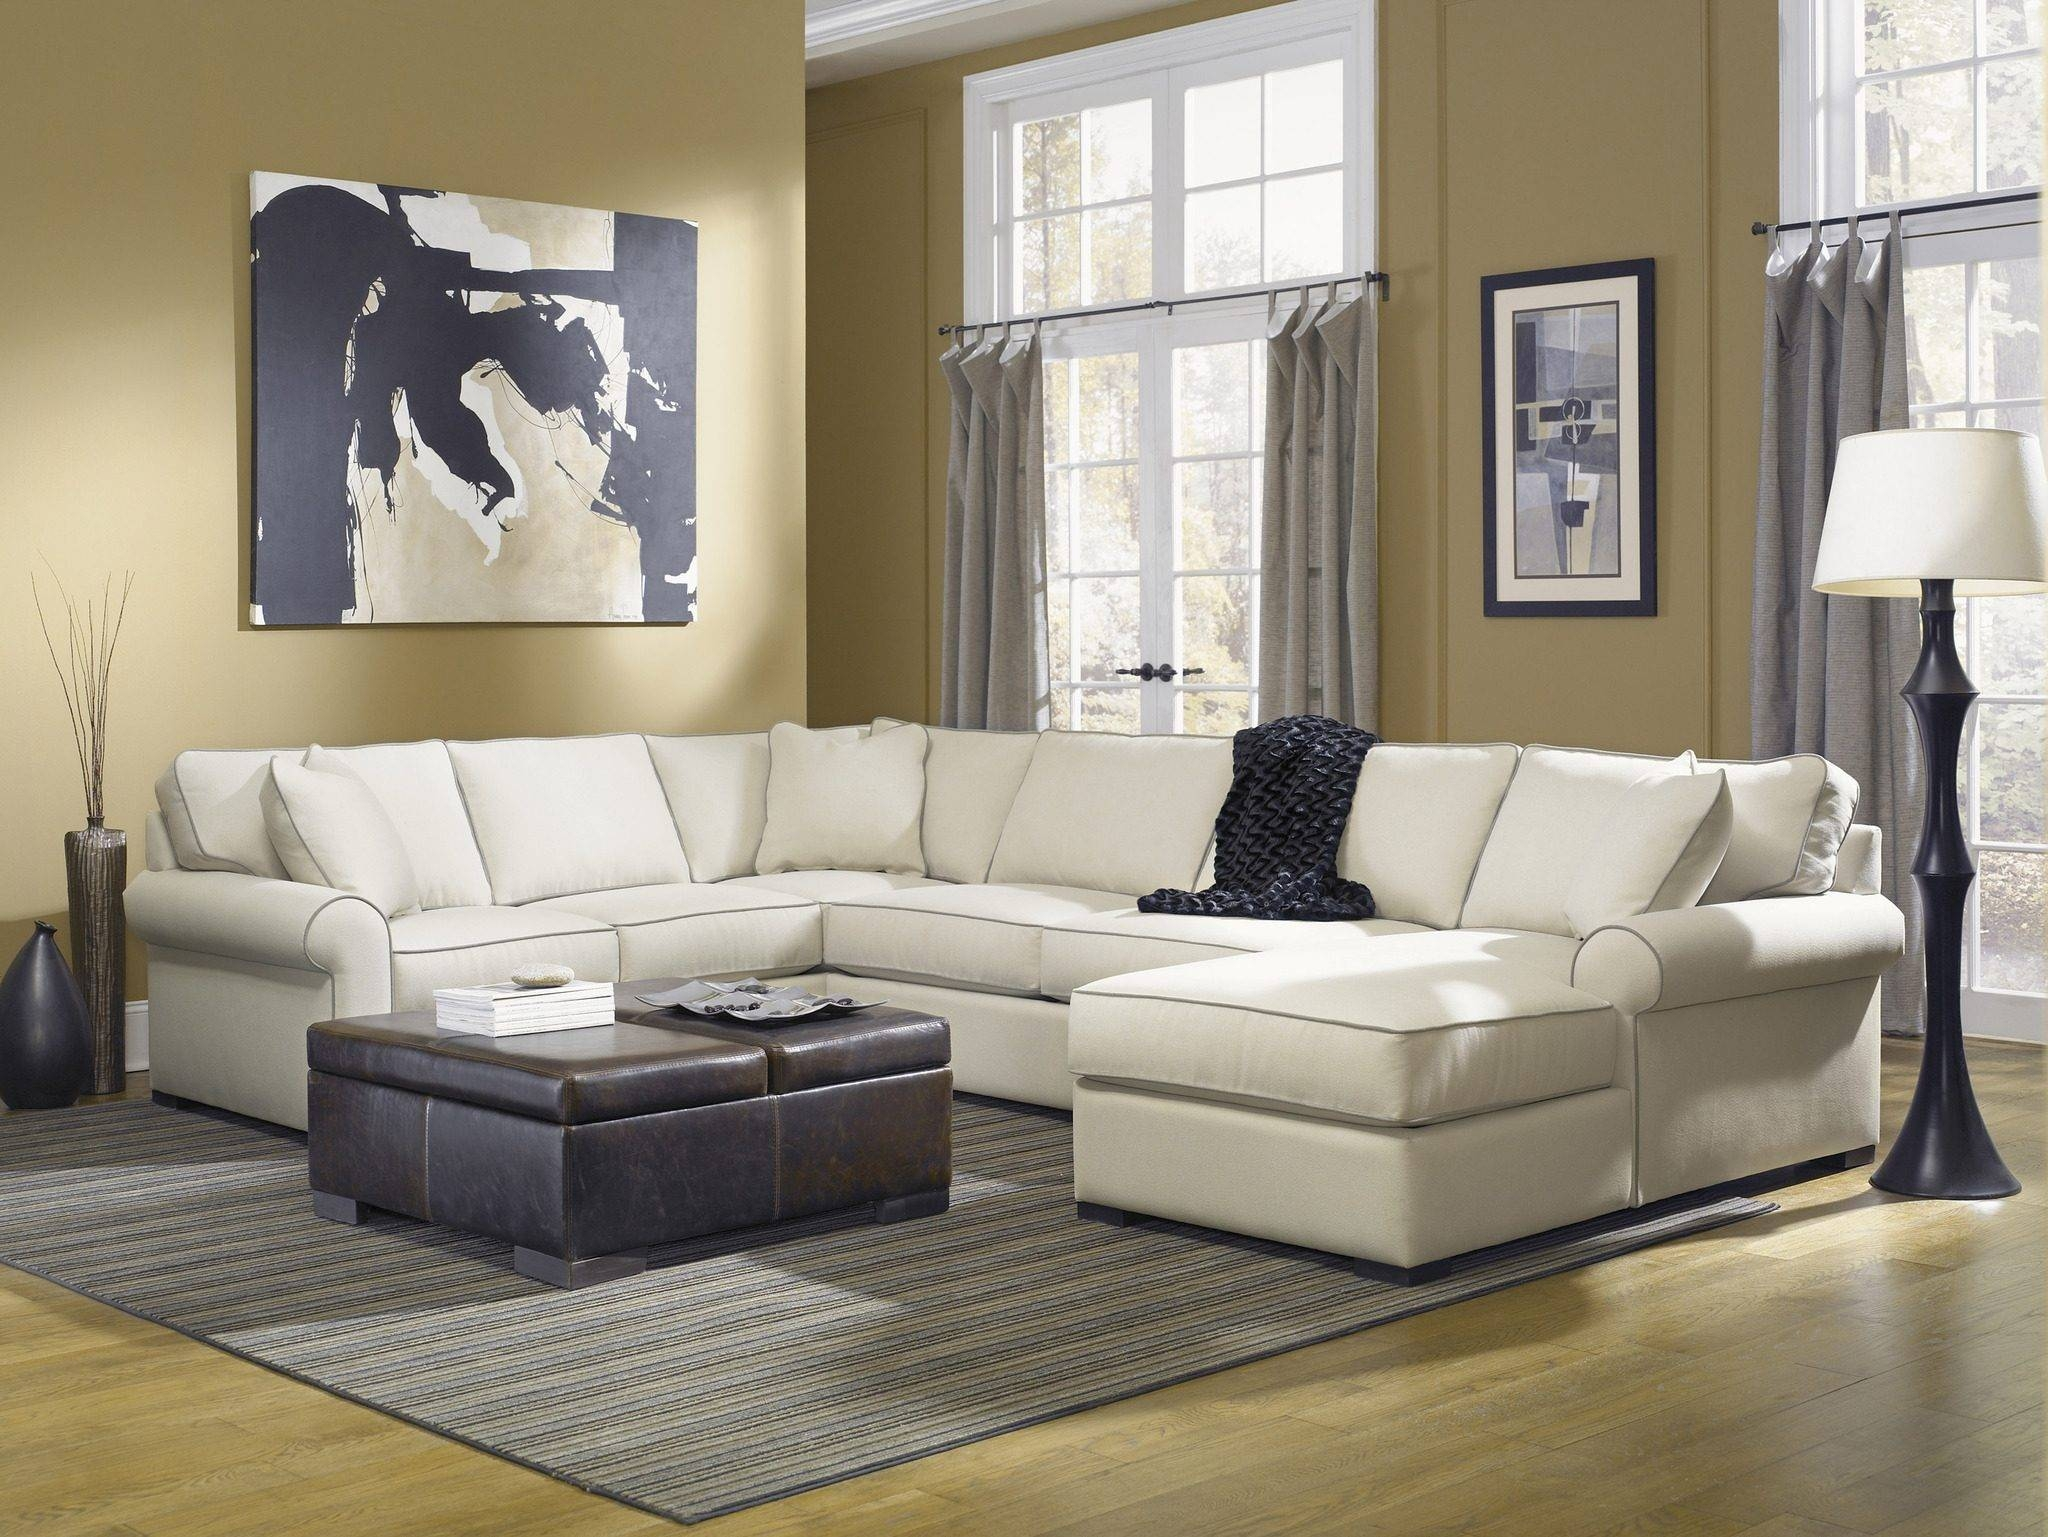 Furniture: Nice Interior Furniture Designrobert Michaels with regard to Down Filled Sectional Sofa (Image 8 of 25)